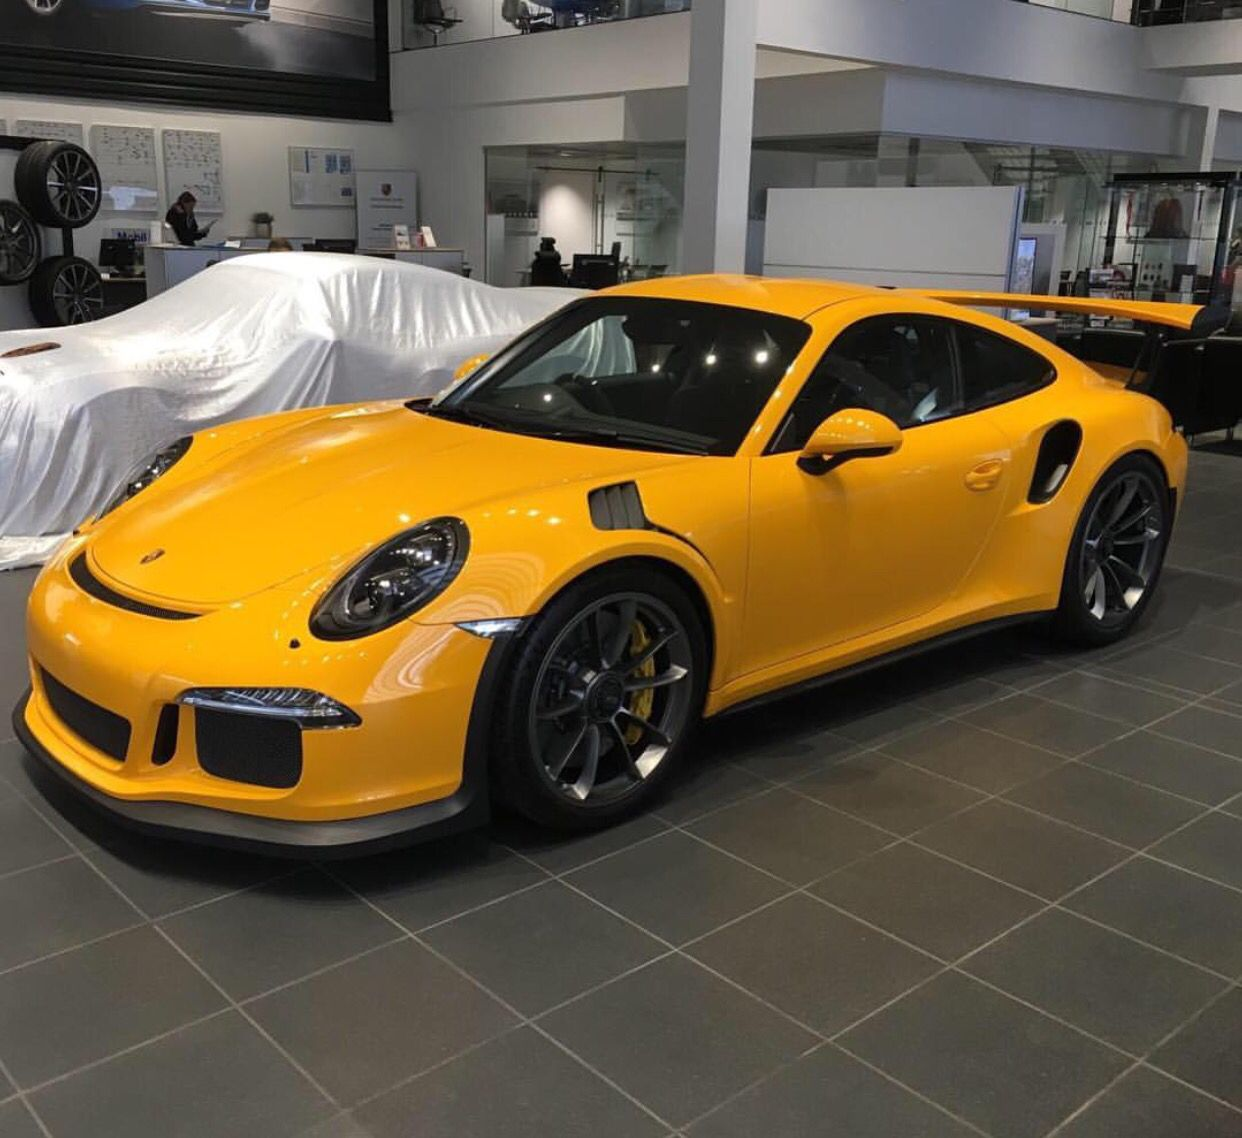 Porsche 911 Turbo Gt3: Porsche 991 GT3 RS Painted In Paint To Sample Signal